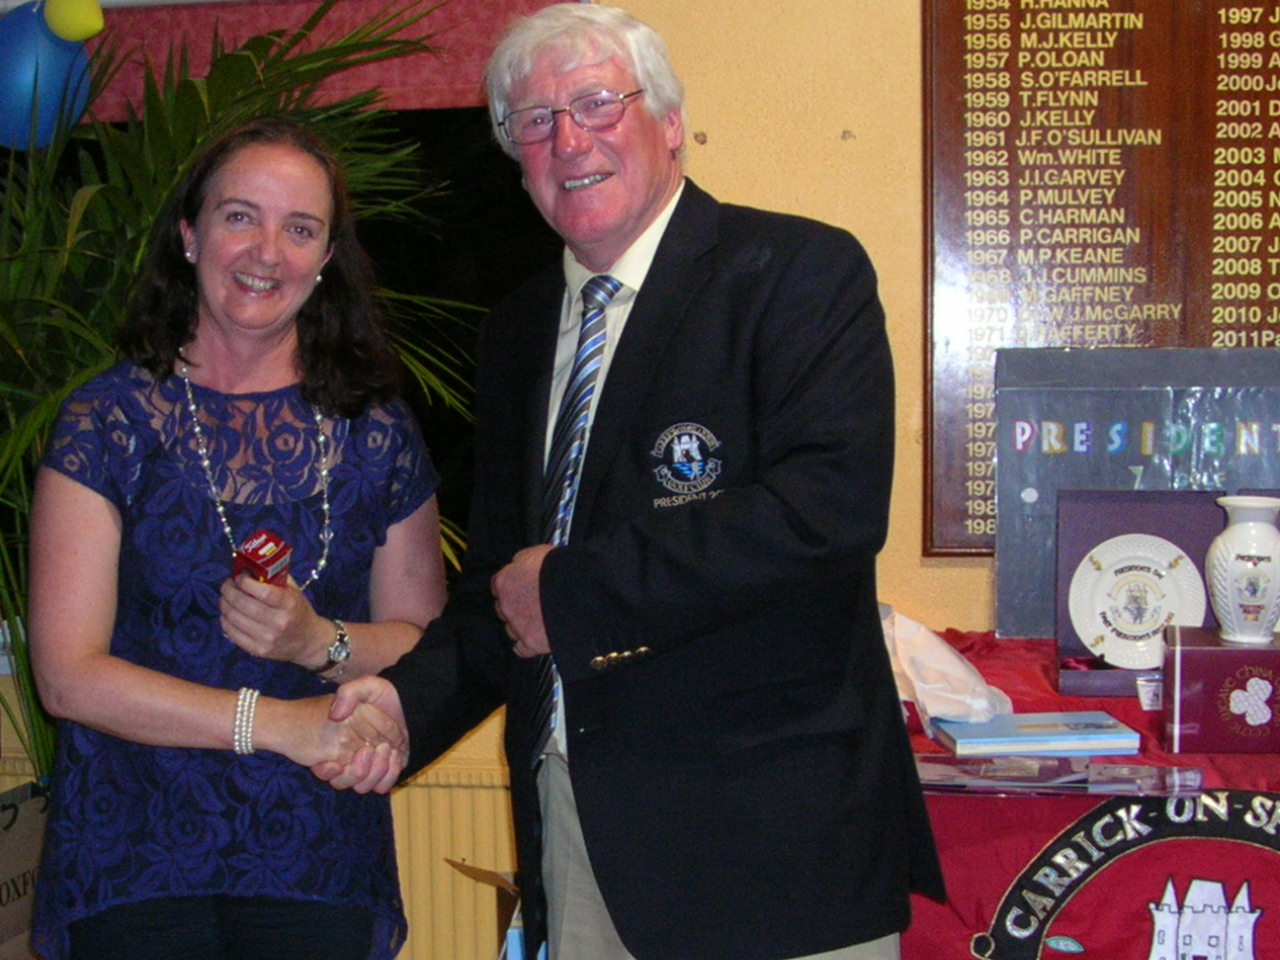 Hilary Collins presented with Birdie Prize by Club President PJ Sharkey